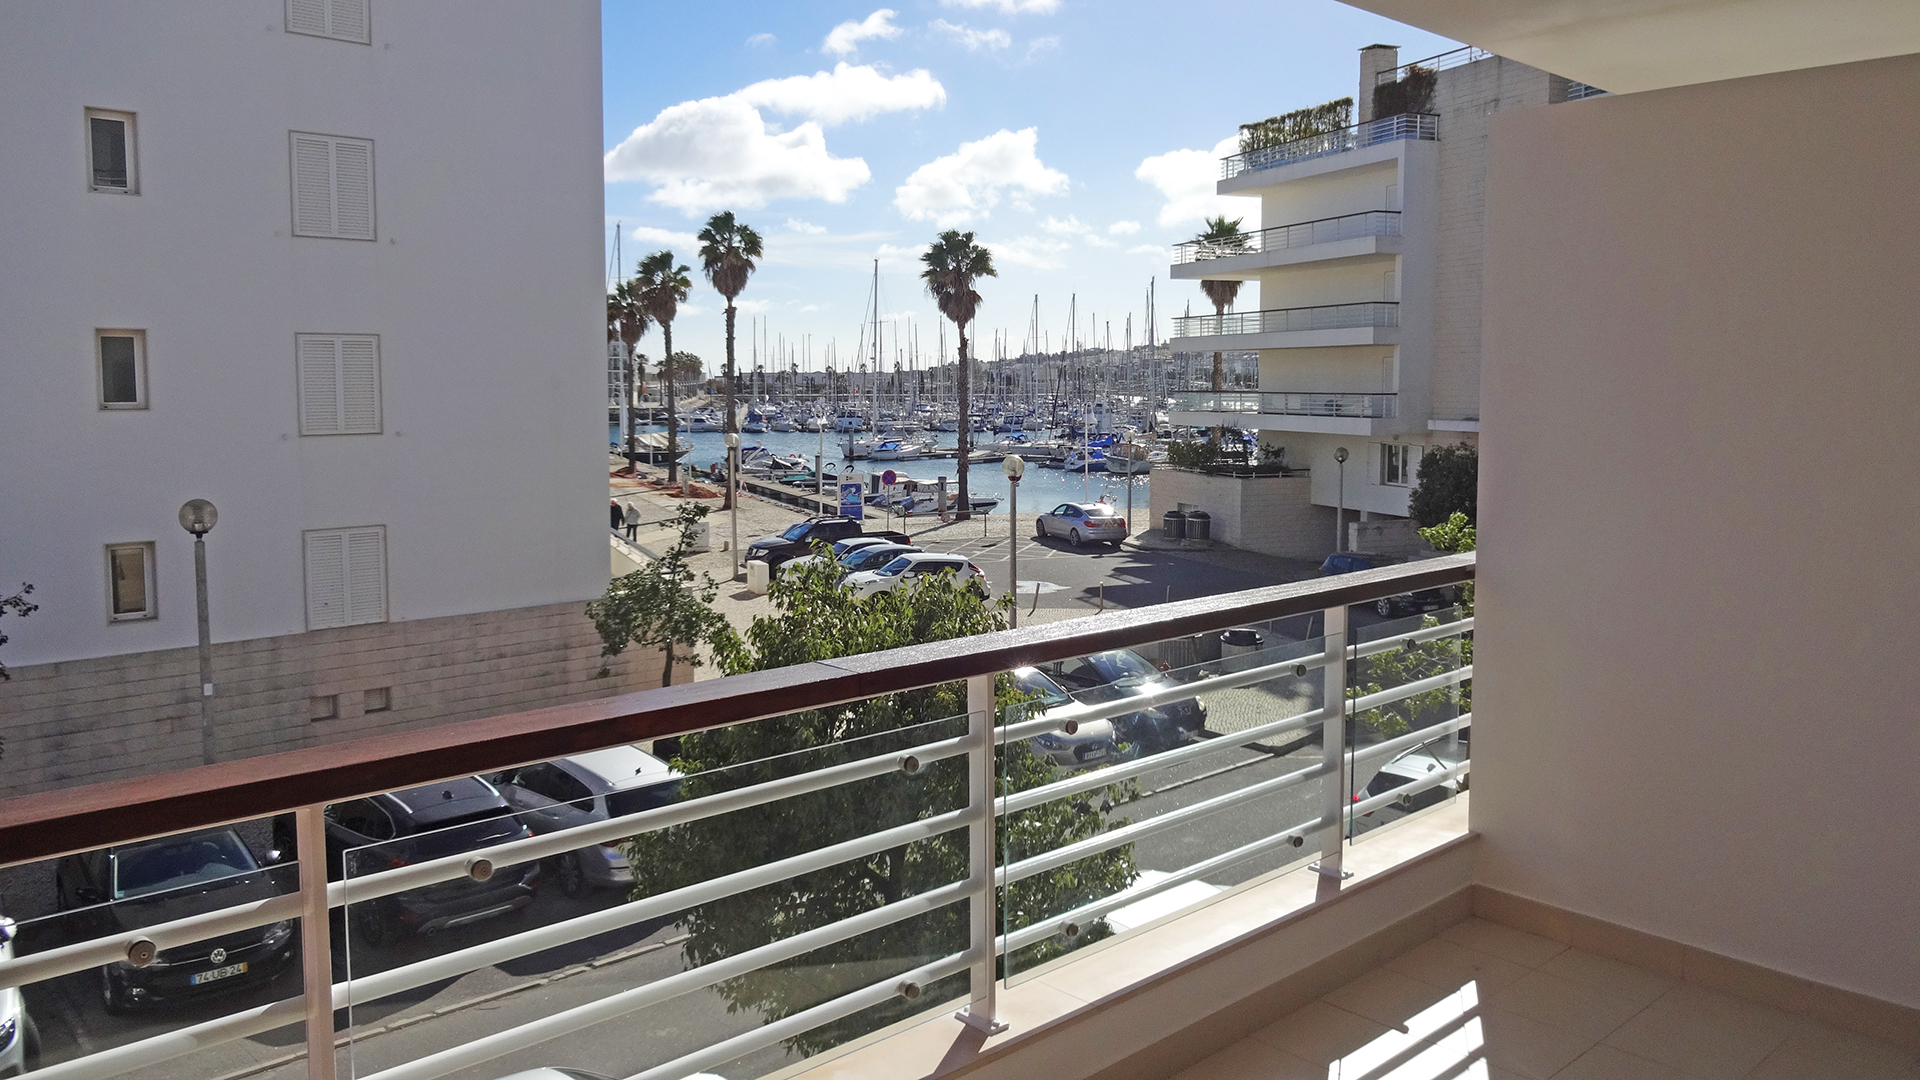 2 bedroom marina apartment with lift and underground parking, Lagos, West Algarve | LG1350 This first floor, 2-bedroom apartment is just a few minutes' walk from Meia Praia beach and the historic centre of Lagos. A variety of shops and restaurants are close by so the property is ideally situated for amenities year-round. The apartment is in superb condition and a great investment.